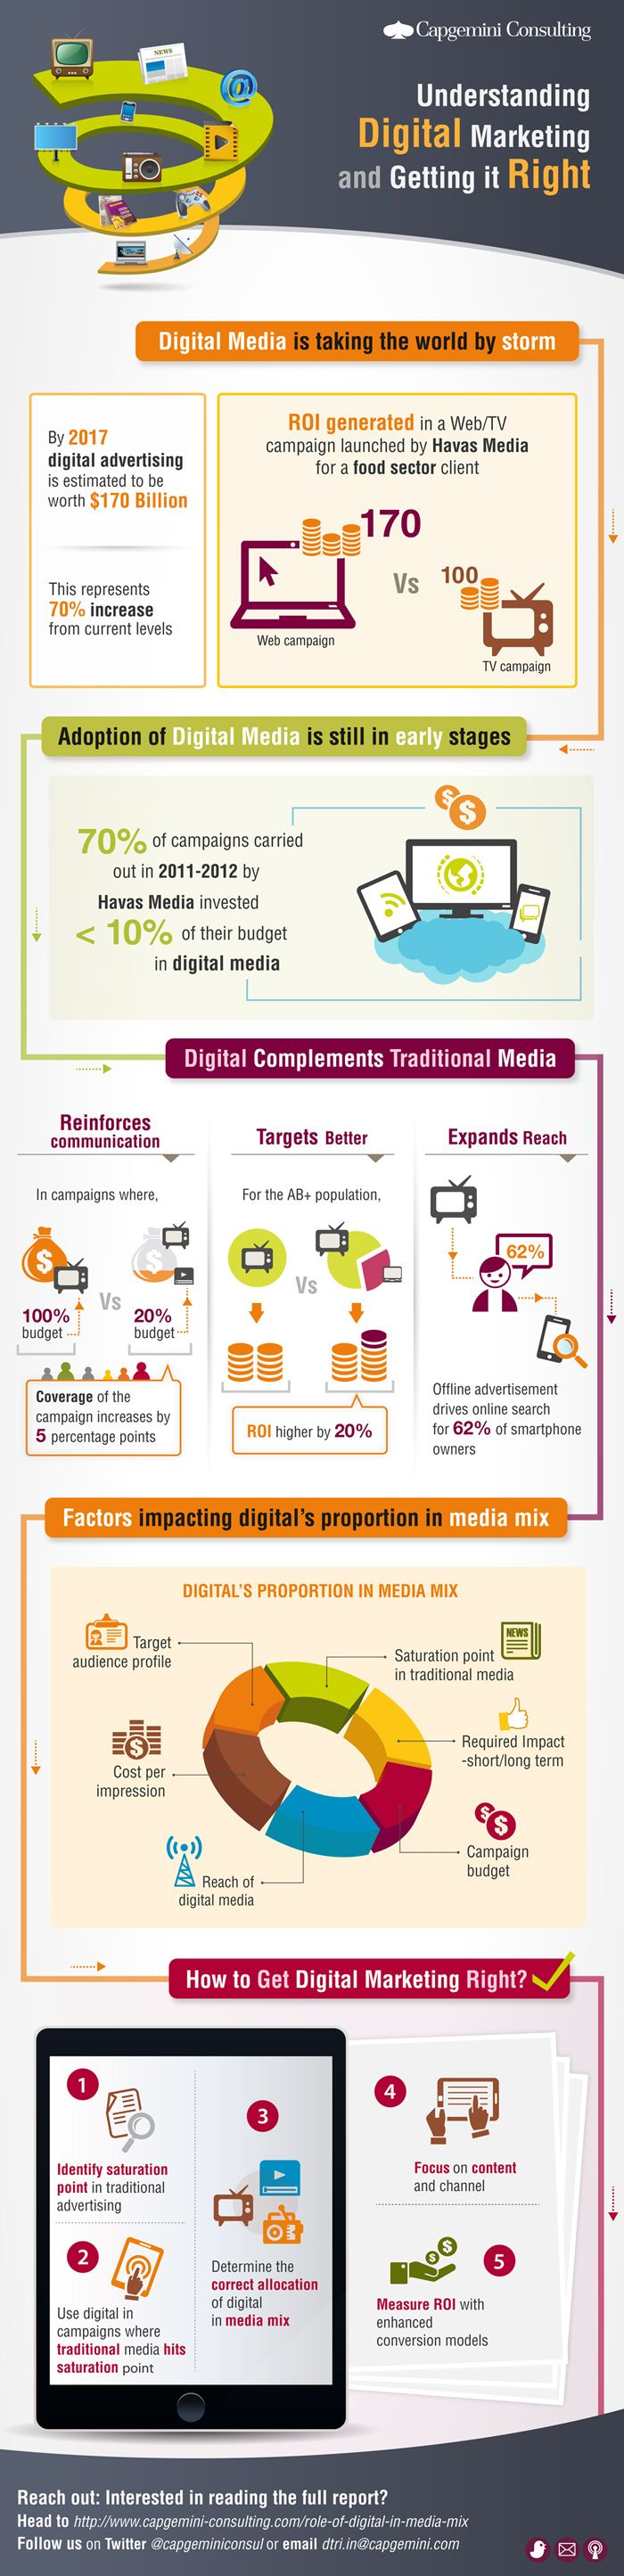 Role of #Digital in #Media Mix: | Capgemini Consulting Worldwide #infographic